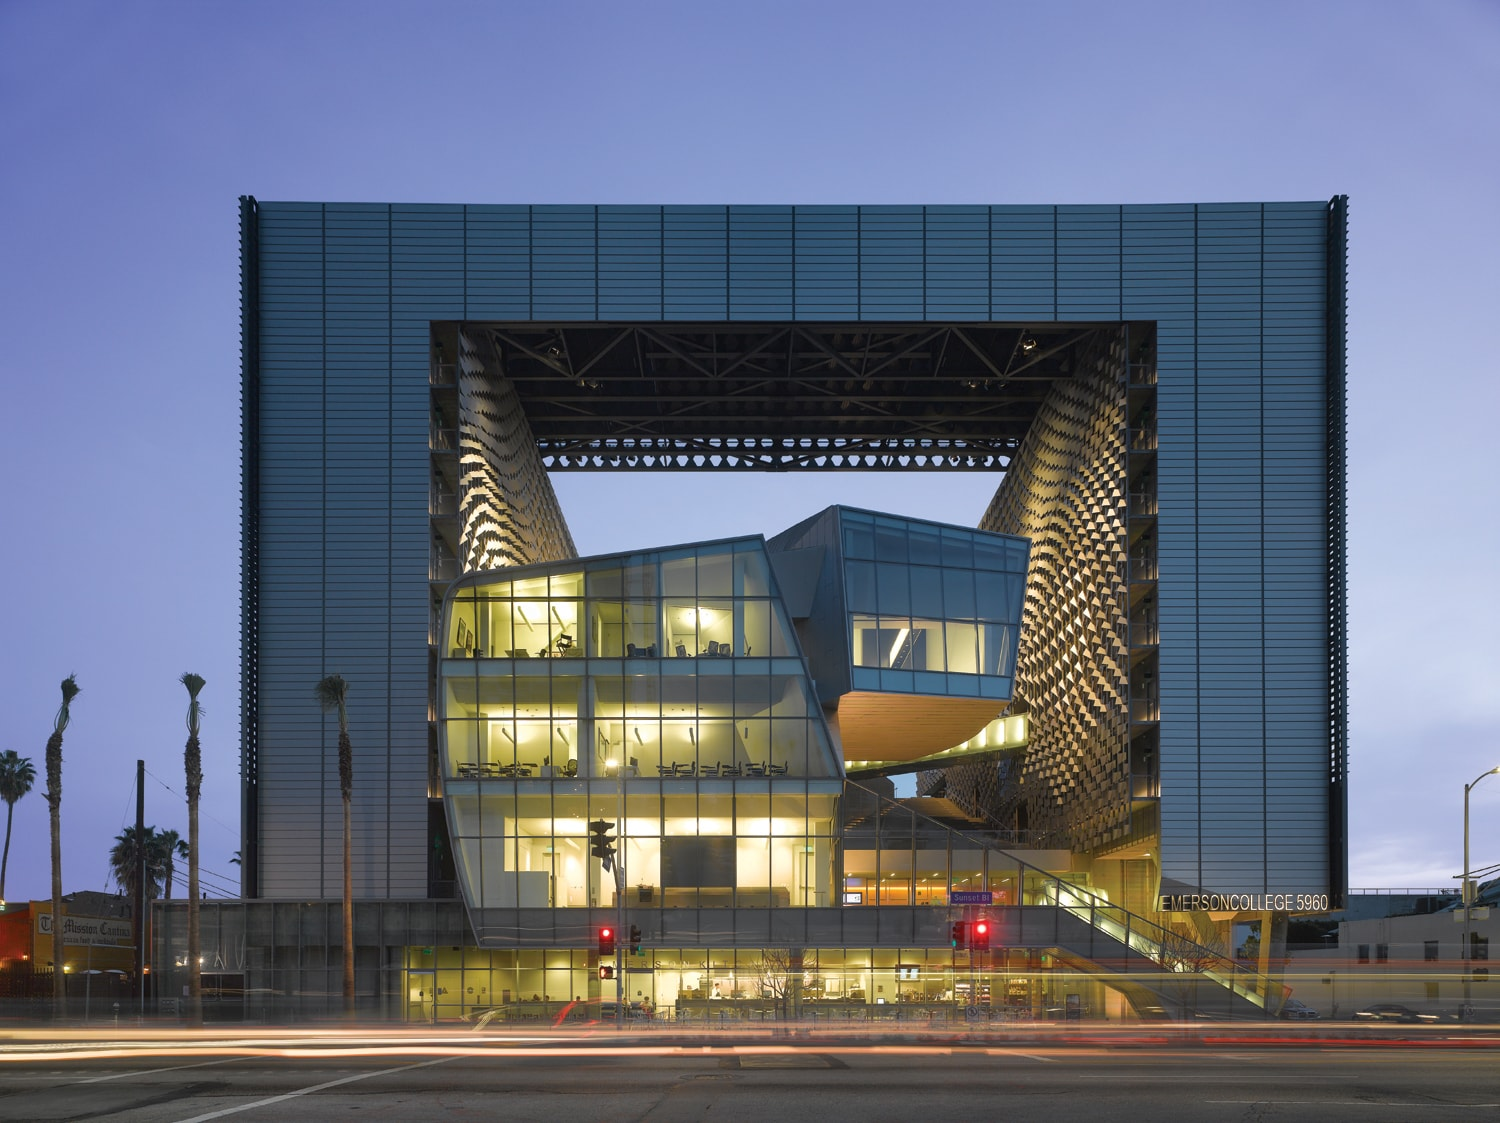 Emerson College Los Angeles Wallace Engineering